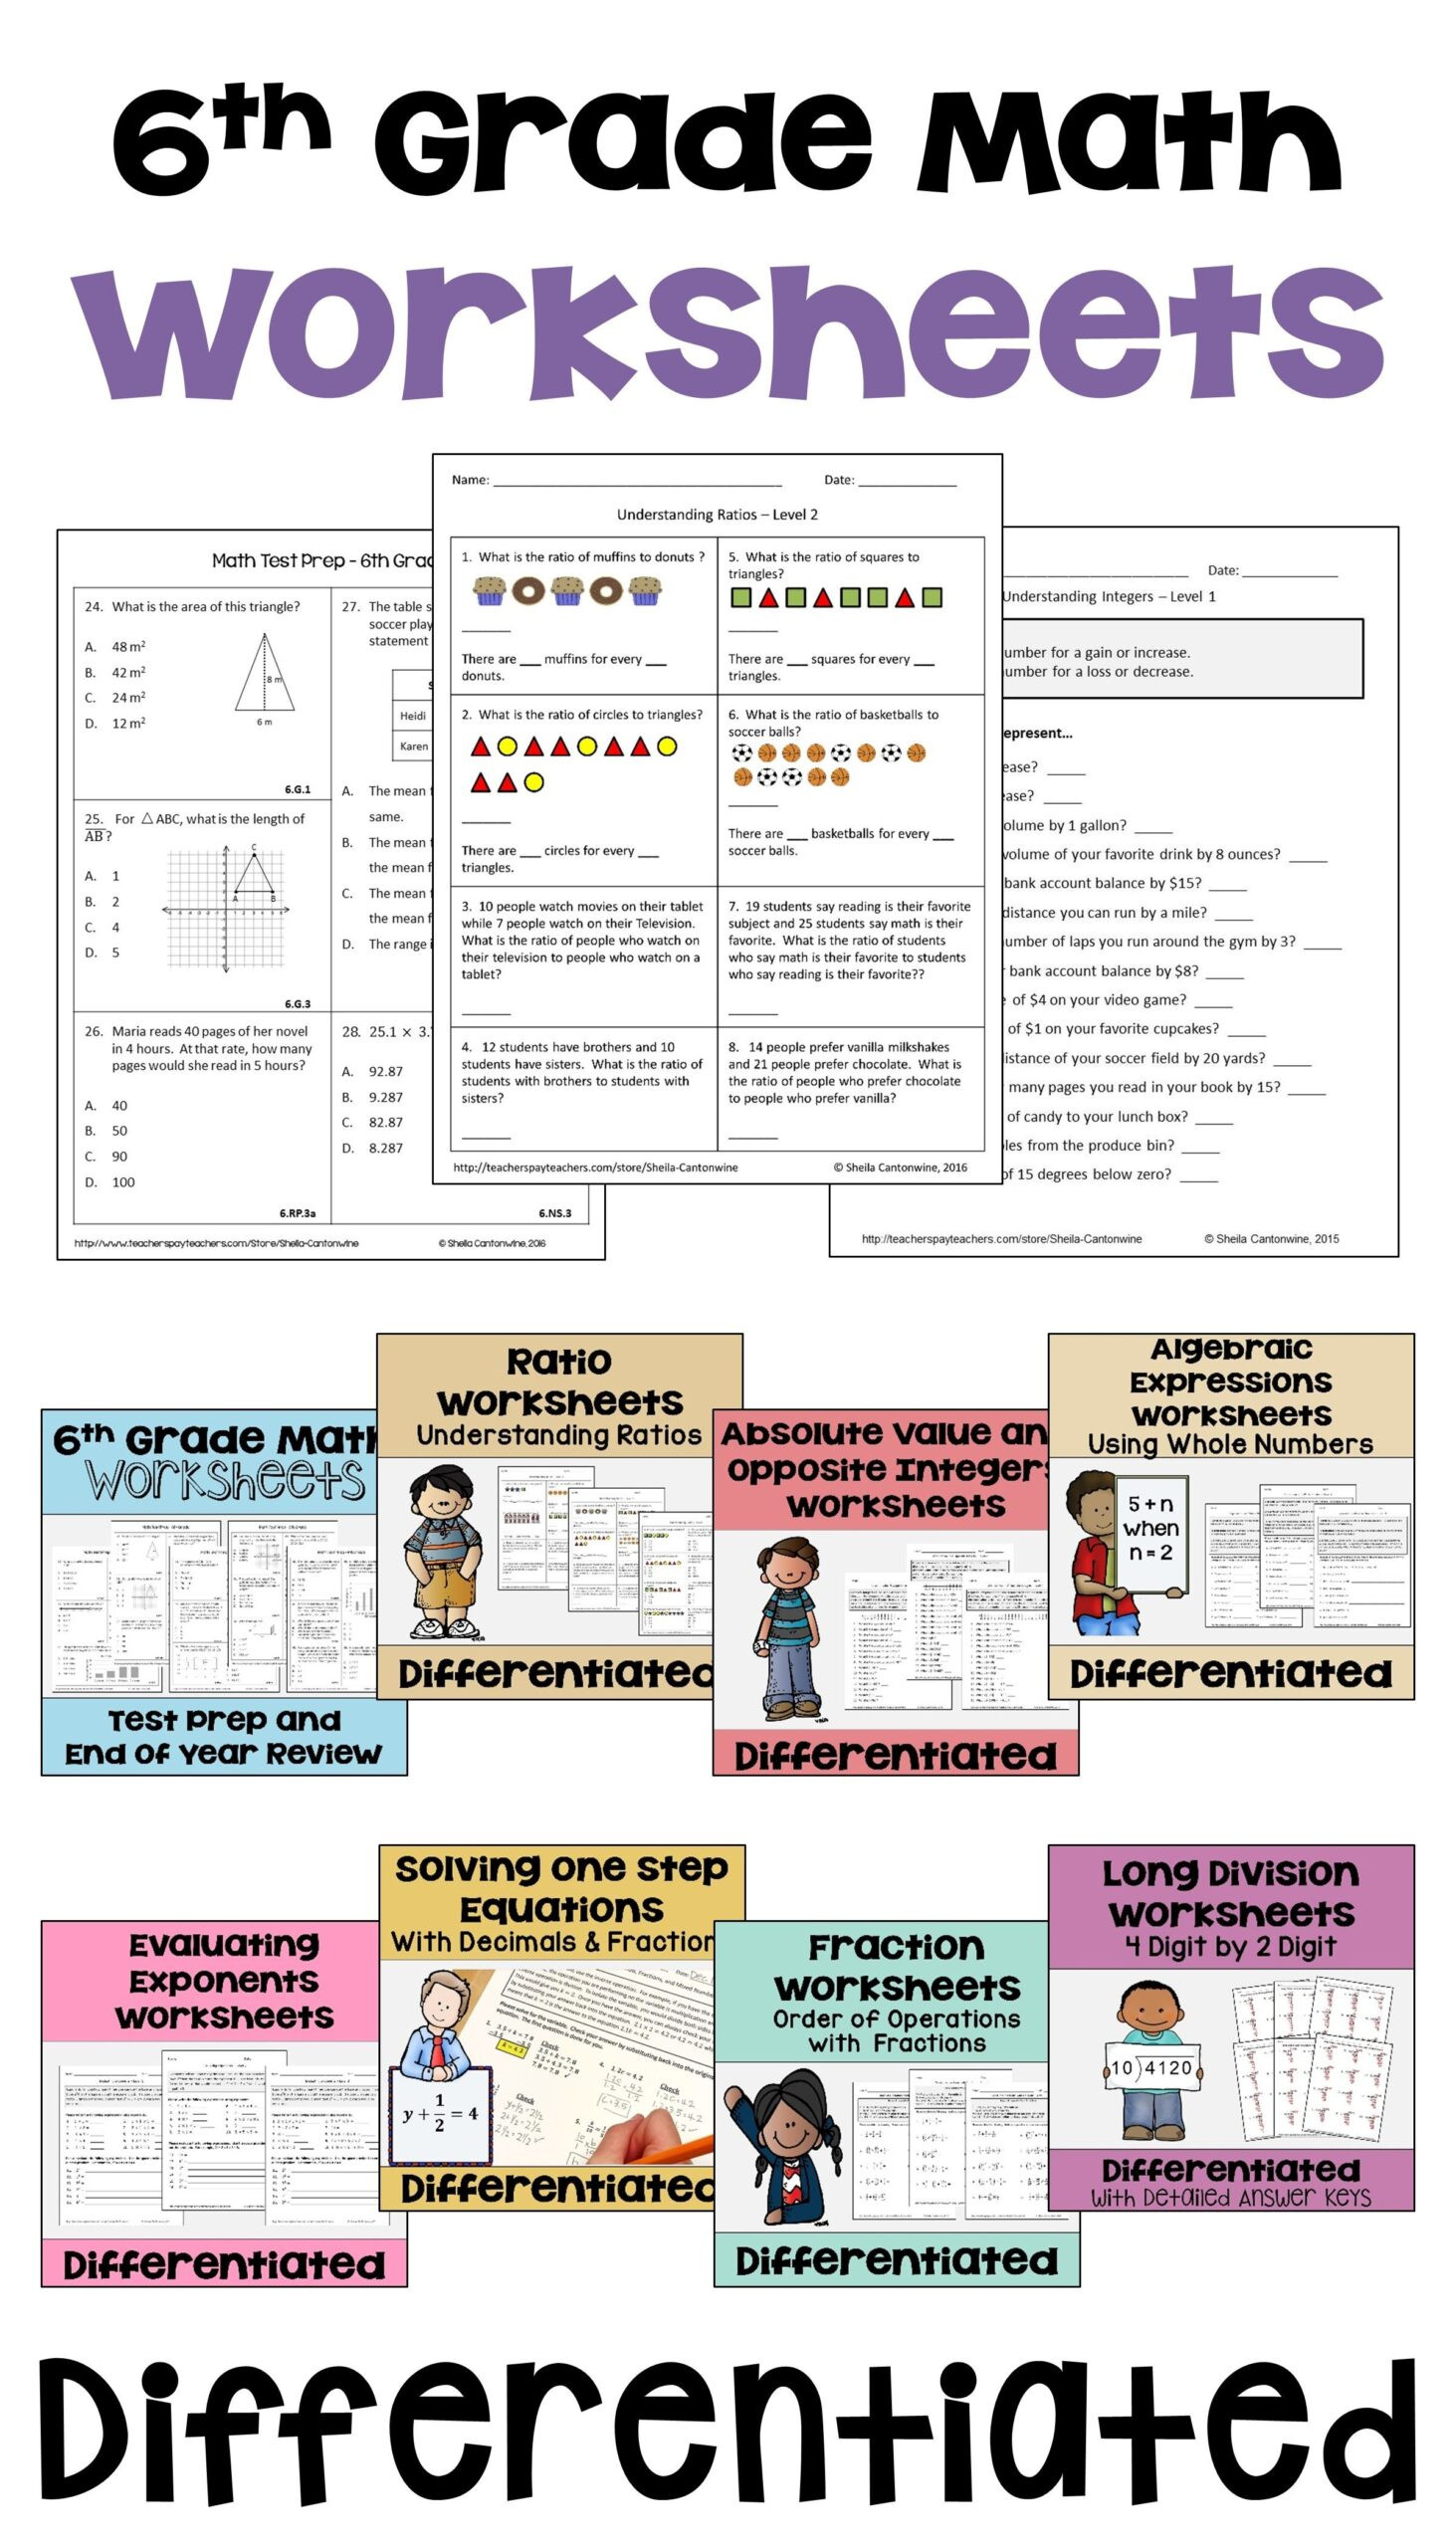 Middle Ages Worksheets 6th Grade 6th Grade Math Differentiated Worksheet Bundle for Centers